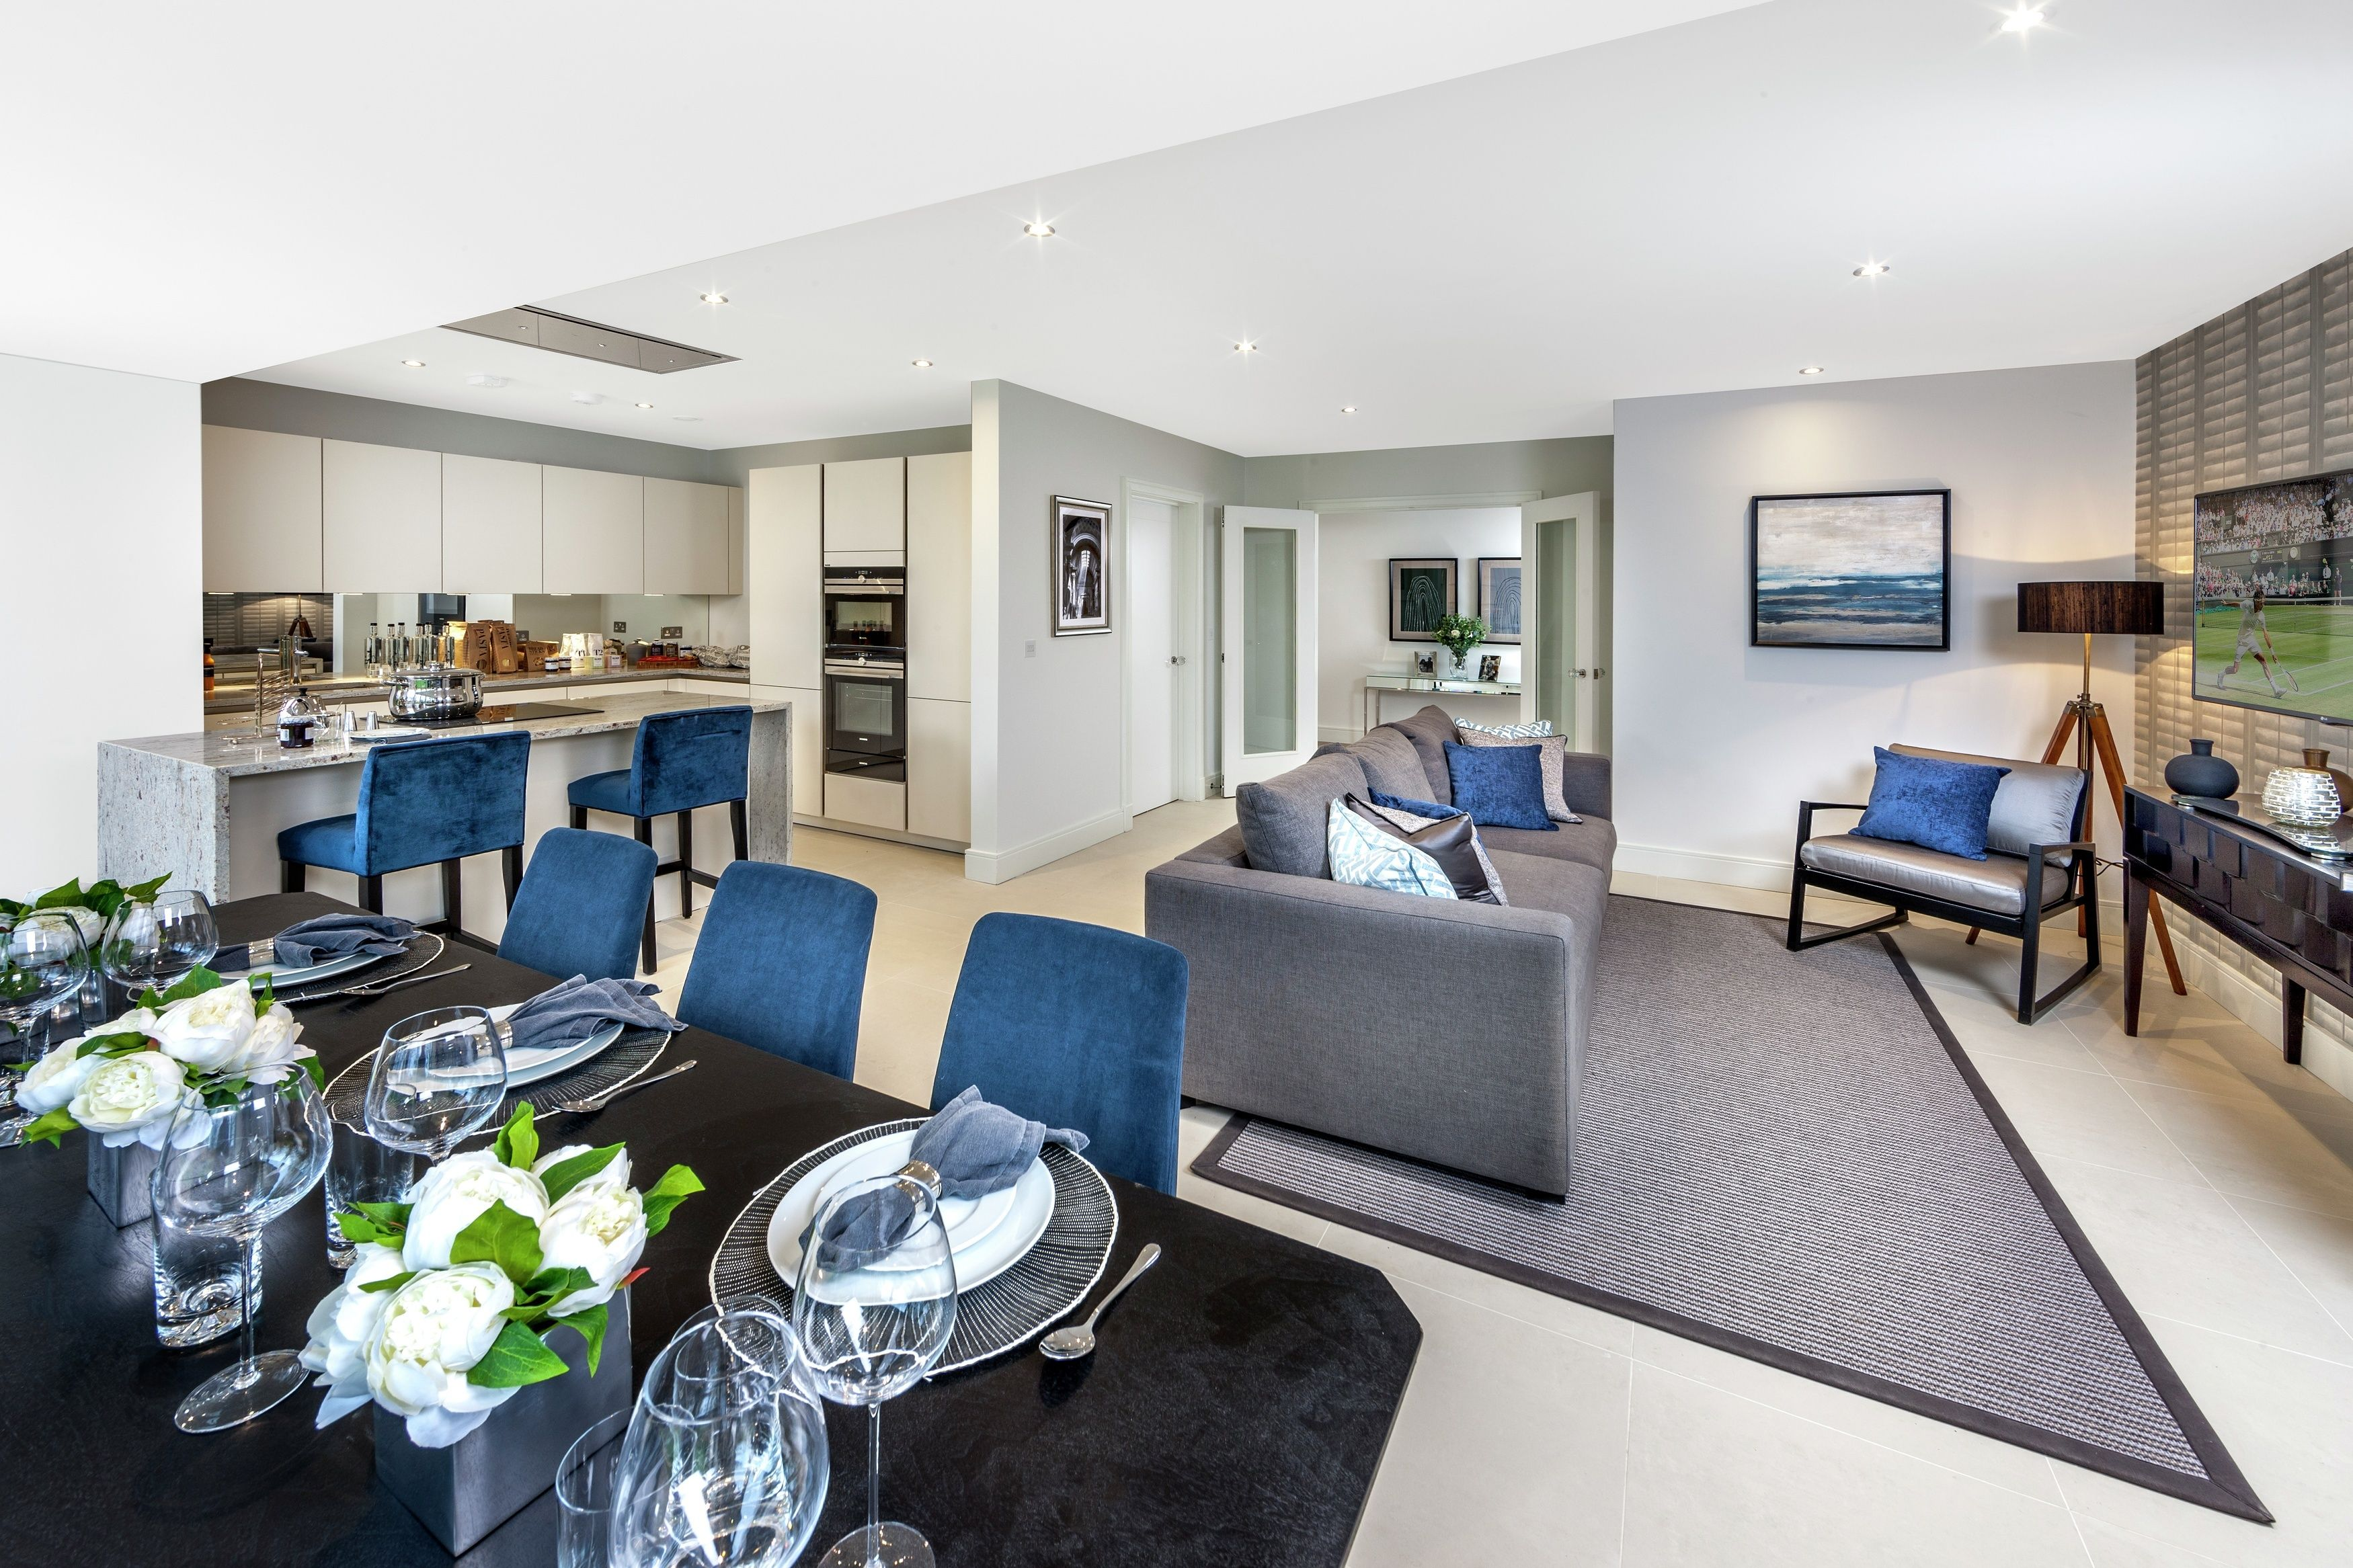 The Pembroke show home